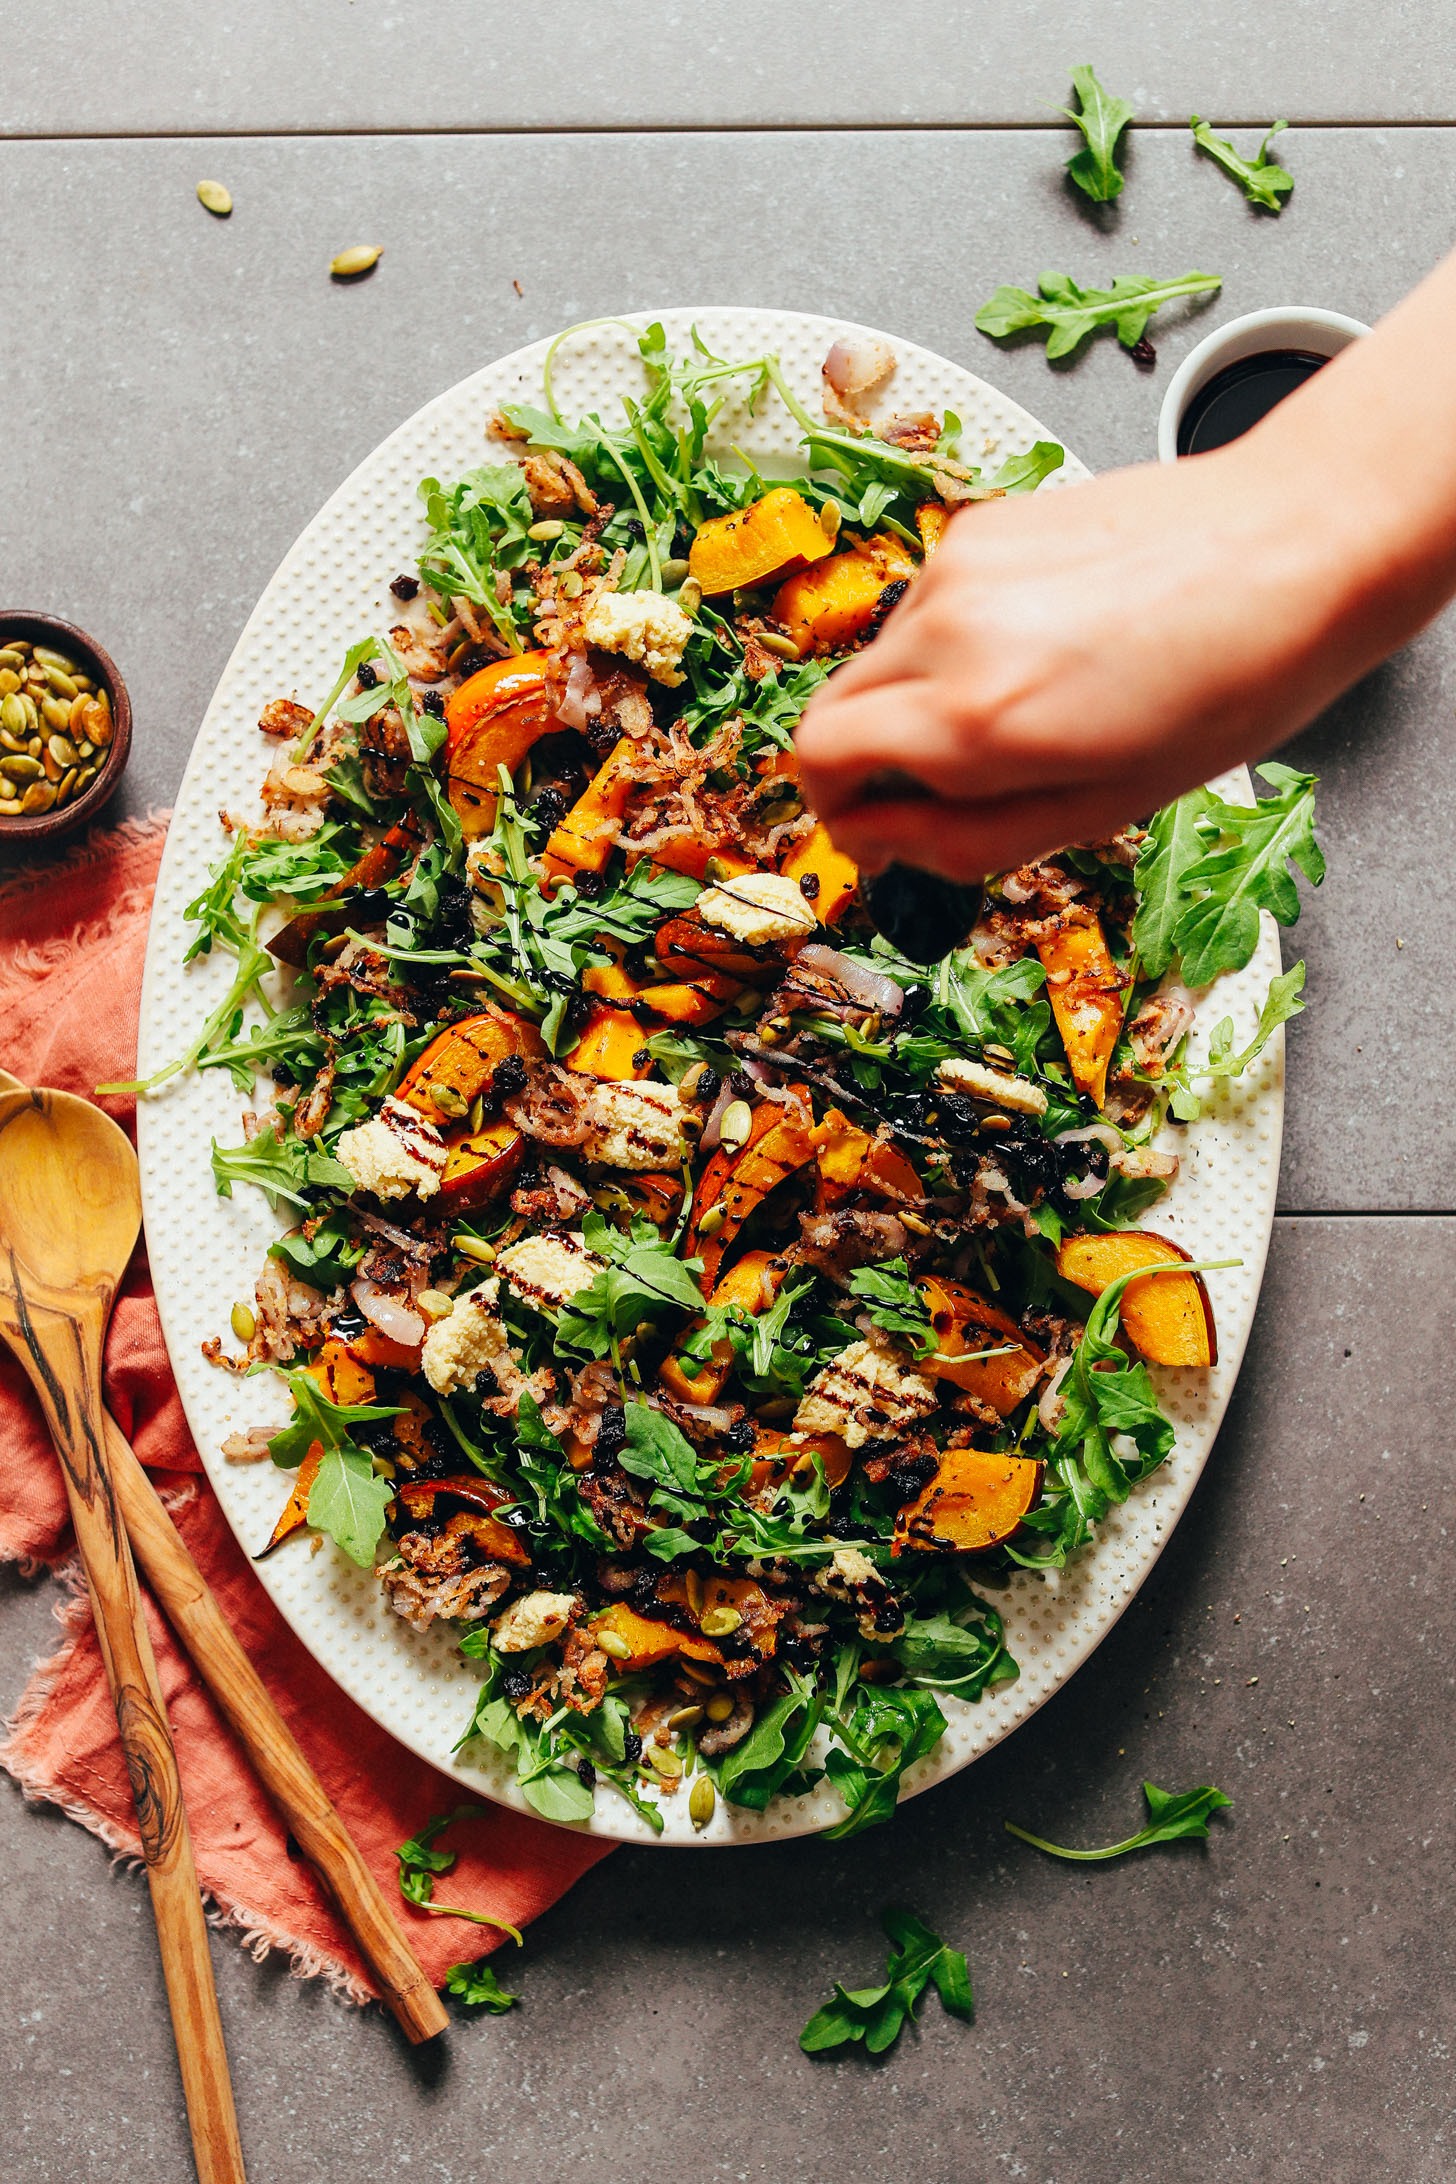 AMAZING-Roasted-Squash-Salad-with-Nut-Cheese-and-Balsamic-Reduction-30-minutes-10-ingredients-BIG-flavor-squash-glutenfree-dinner-vegan-salad-minimalistbaker-recipe-6